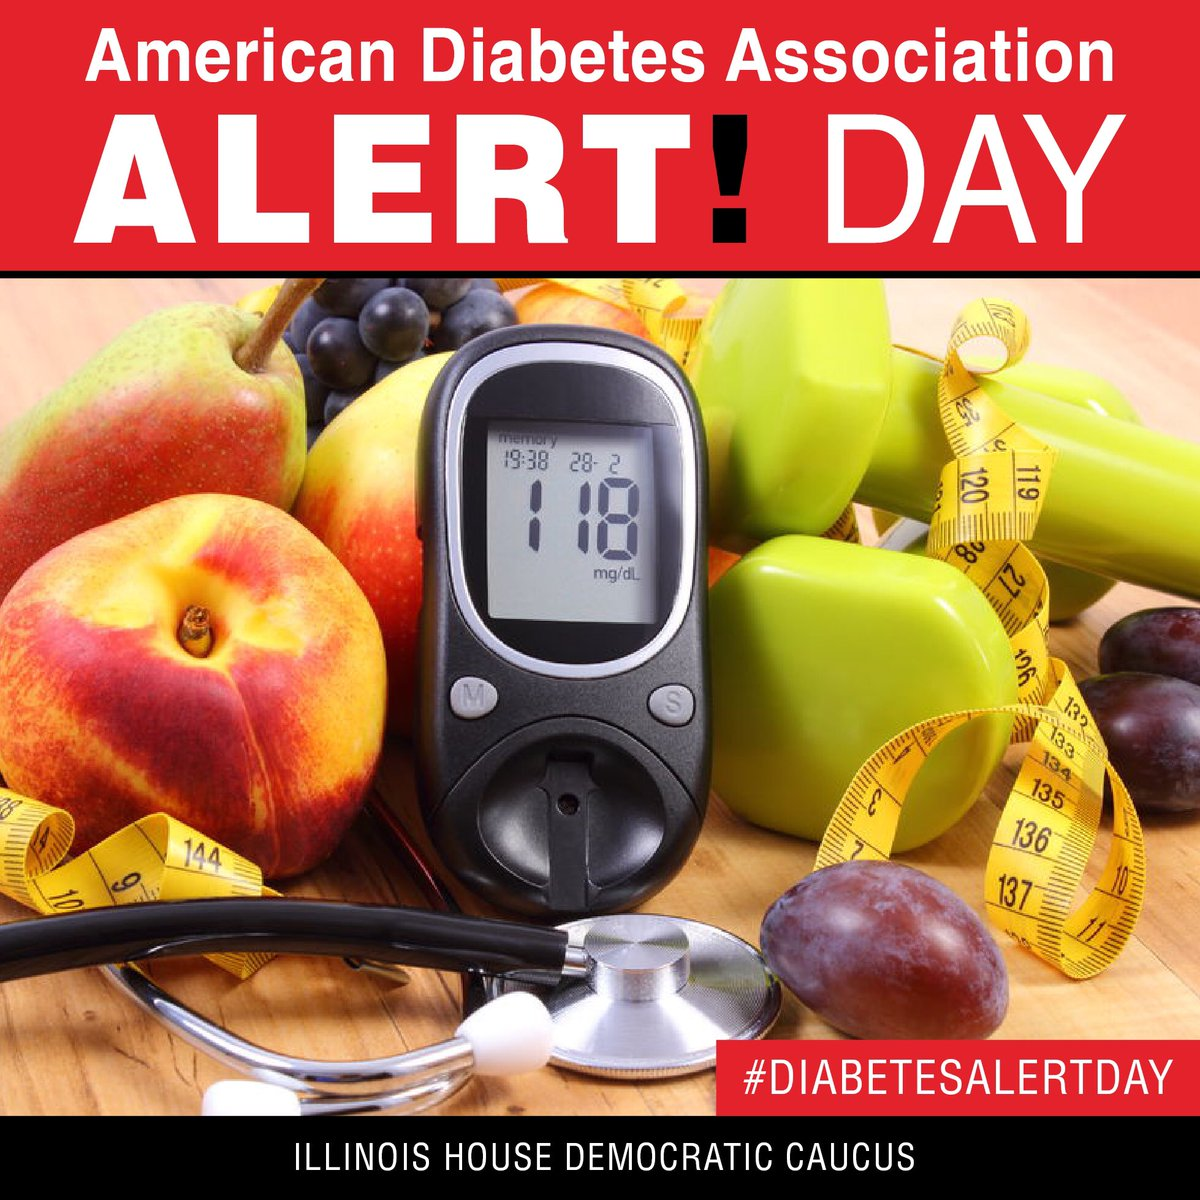 test Twitter Media - For #DiabetesAlertDay, please join me in taking the free type 2 diabetes risk test: https://t.co/35C226hYfy https://t.co/JiCBtpe2hR